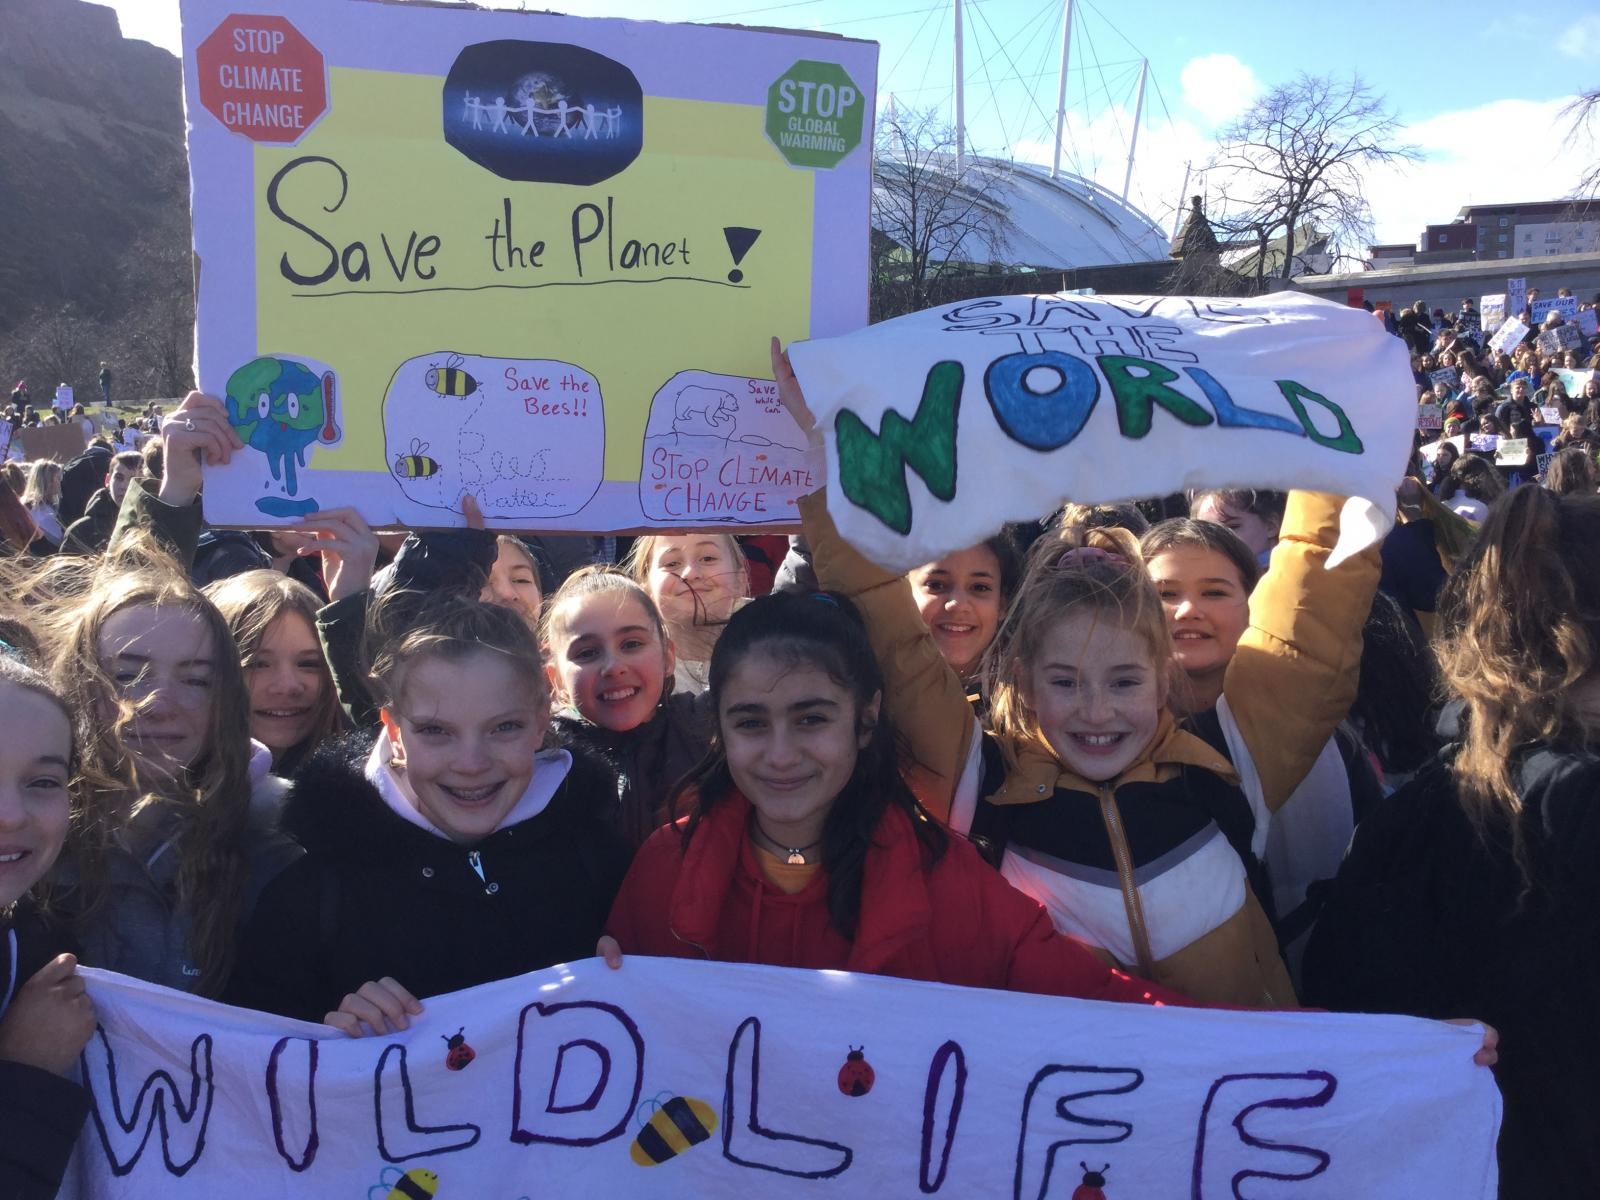 Climate Strikes: Fridays for the future, a call to action from young people around the world